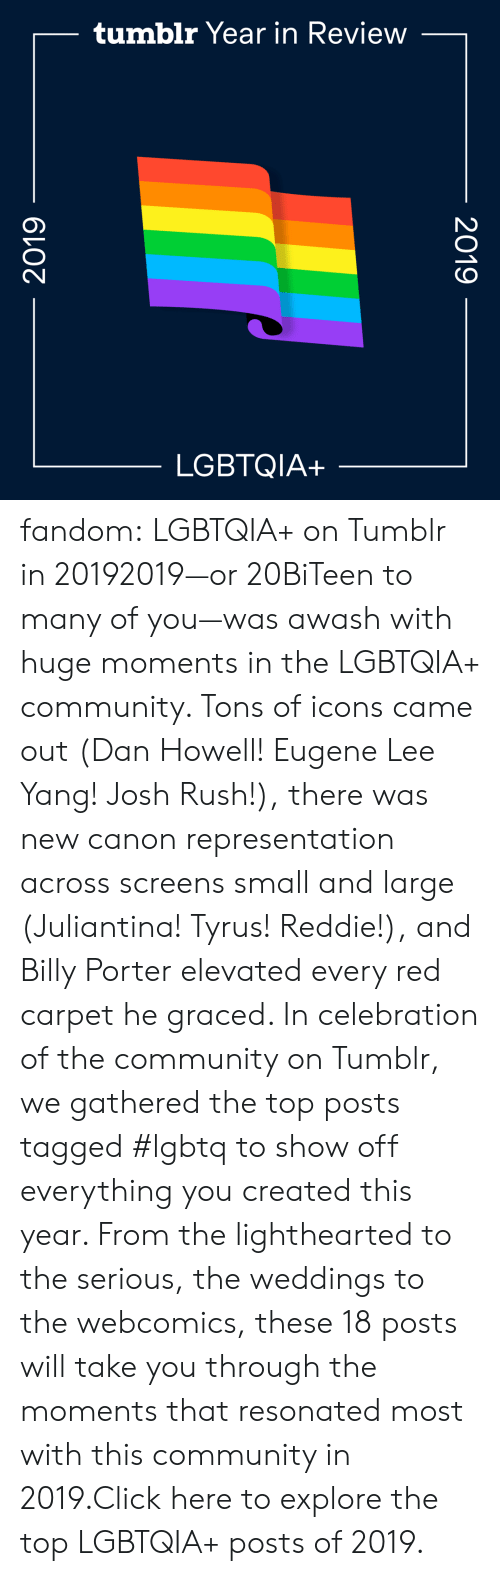 pan: tumblr Year in Review  LGBTQIA+  2019  2019 fandom:  LGBTQIA+ on Tumblr in 20192019—or 20BiTeen to many of you—was awash with huge moments in the LGBTQIA+ community. Tons of icons came out (Dan Howell! Eugene Lee Yang! Josh Rush!), there was new canon representation across screens small and large (Juliantina! Tyrus! Reddie!), and Billy Porter elevated every red carpet he graced. In celebration of the community on Tumblr, we gathered the top posts tagged #lgbtq to show off everything you created this year. From the lighthearted to the serious, the weddings to the webcomics, these 18 posts will take you through the moments that resonated most with this community in 2019.Click here to explore the top LGBTQIA+ posts of 2019.